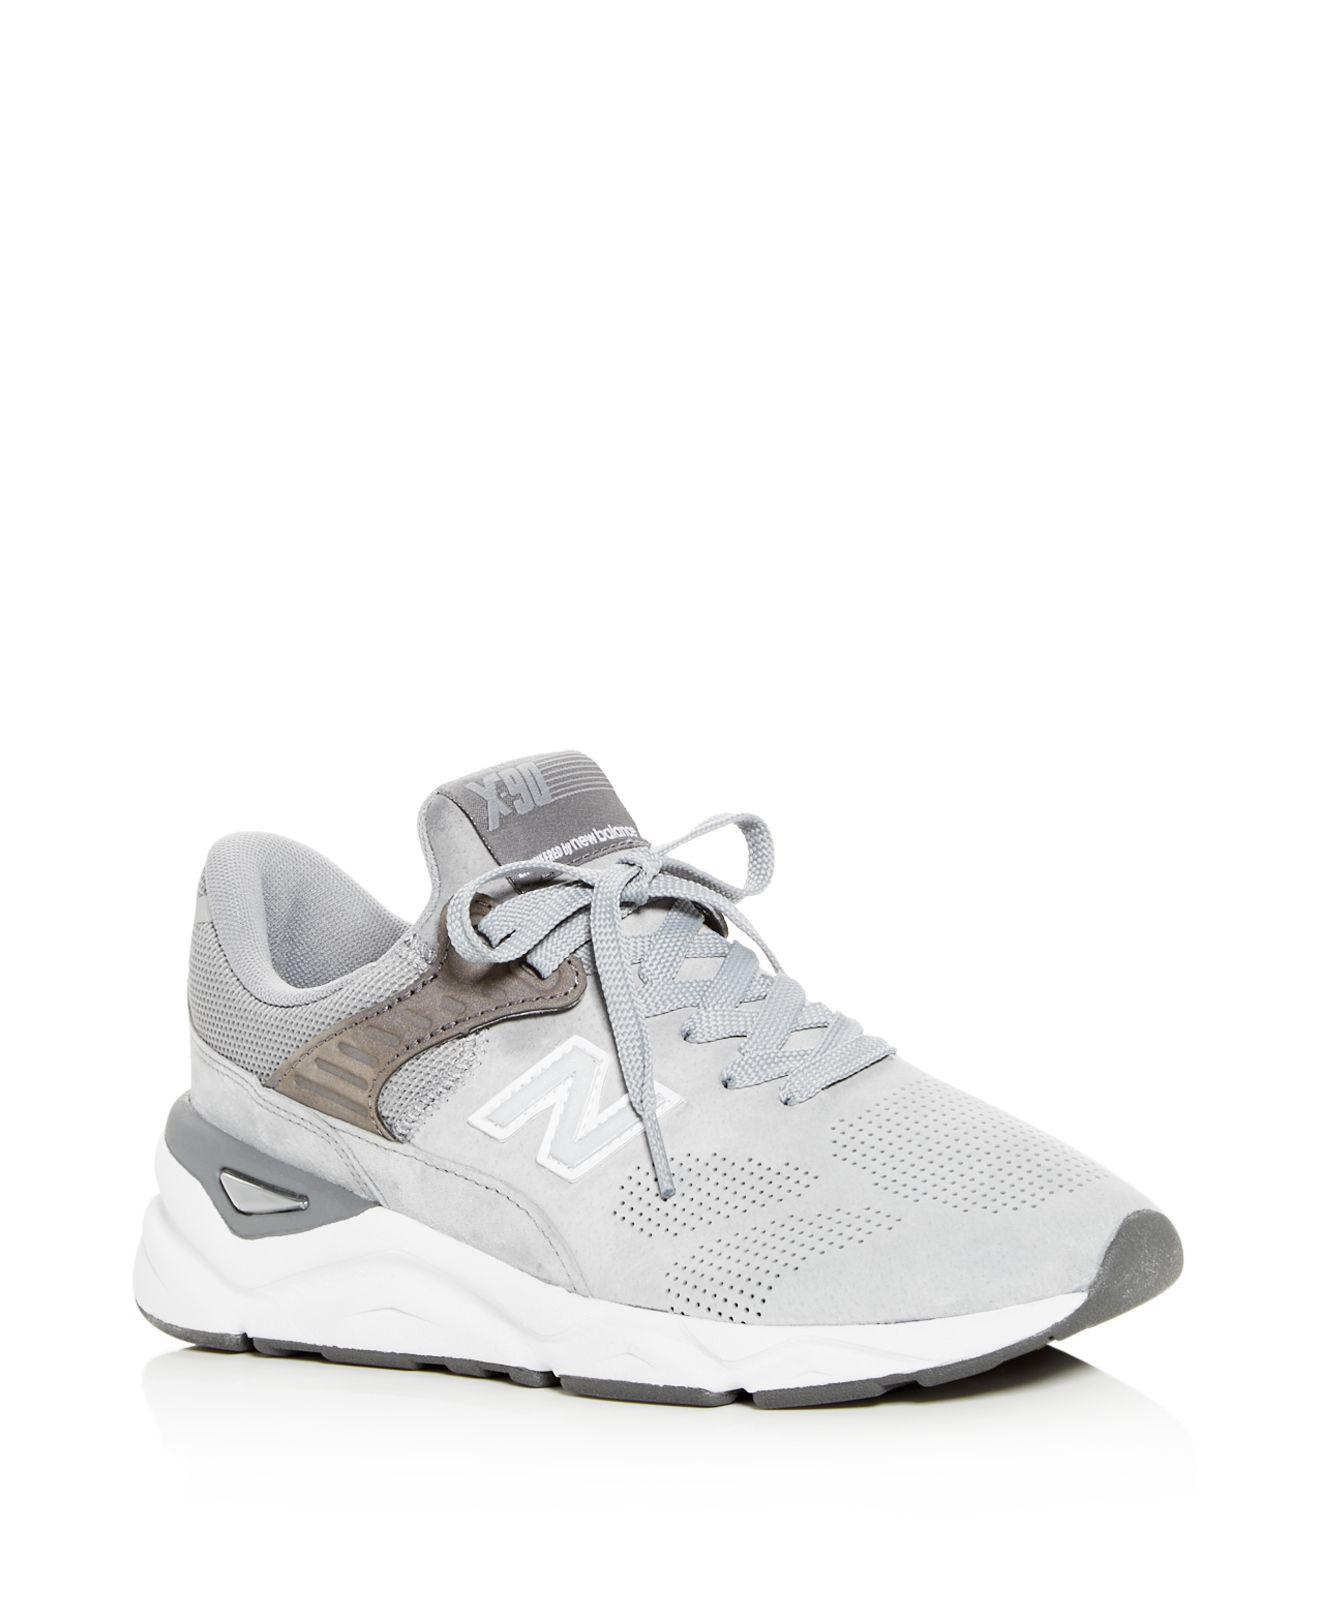 New Balance Women's X90 Perforated Suede Lace Up Sneakers cROC73SCT